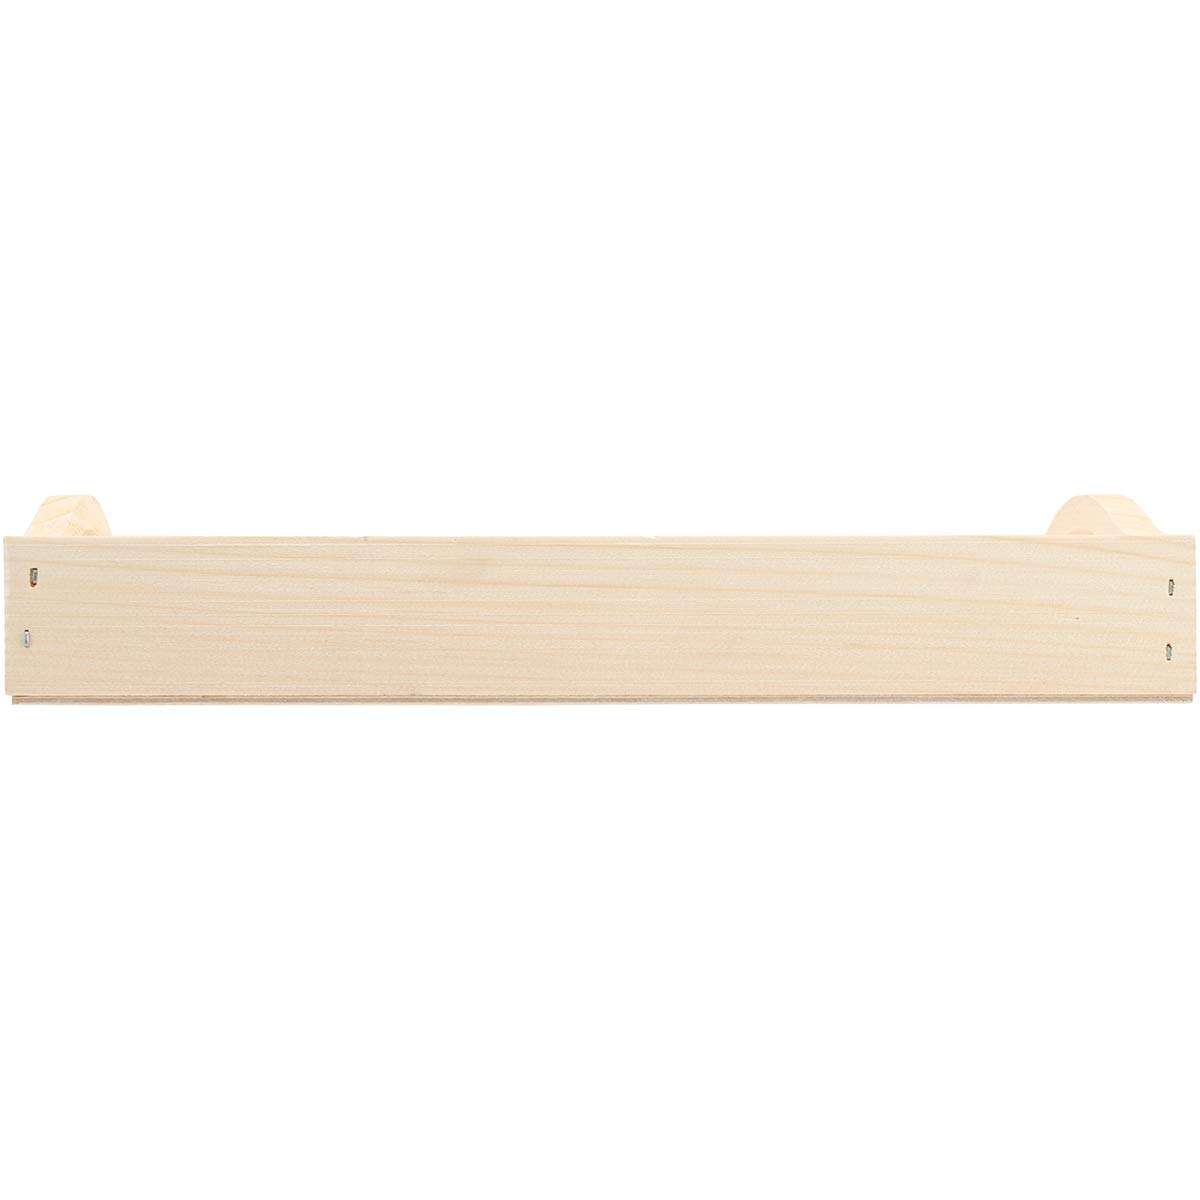 """Walnut Hollow Unfinished Wood Serving Tray for Weddings, Home Decor and Craft Projects, 8"""" x 15"""""""